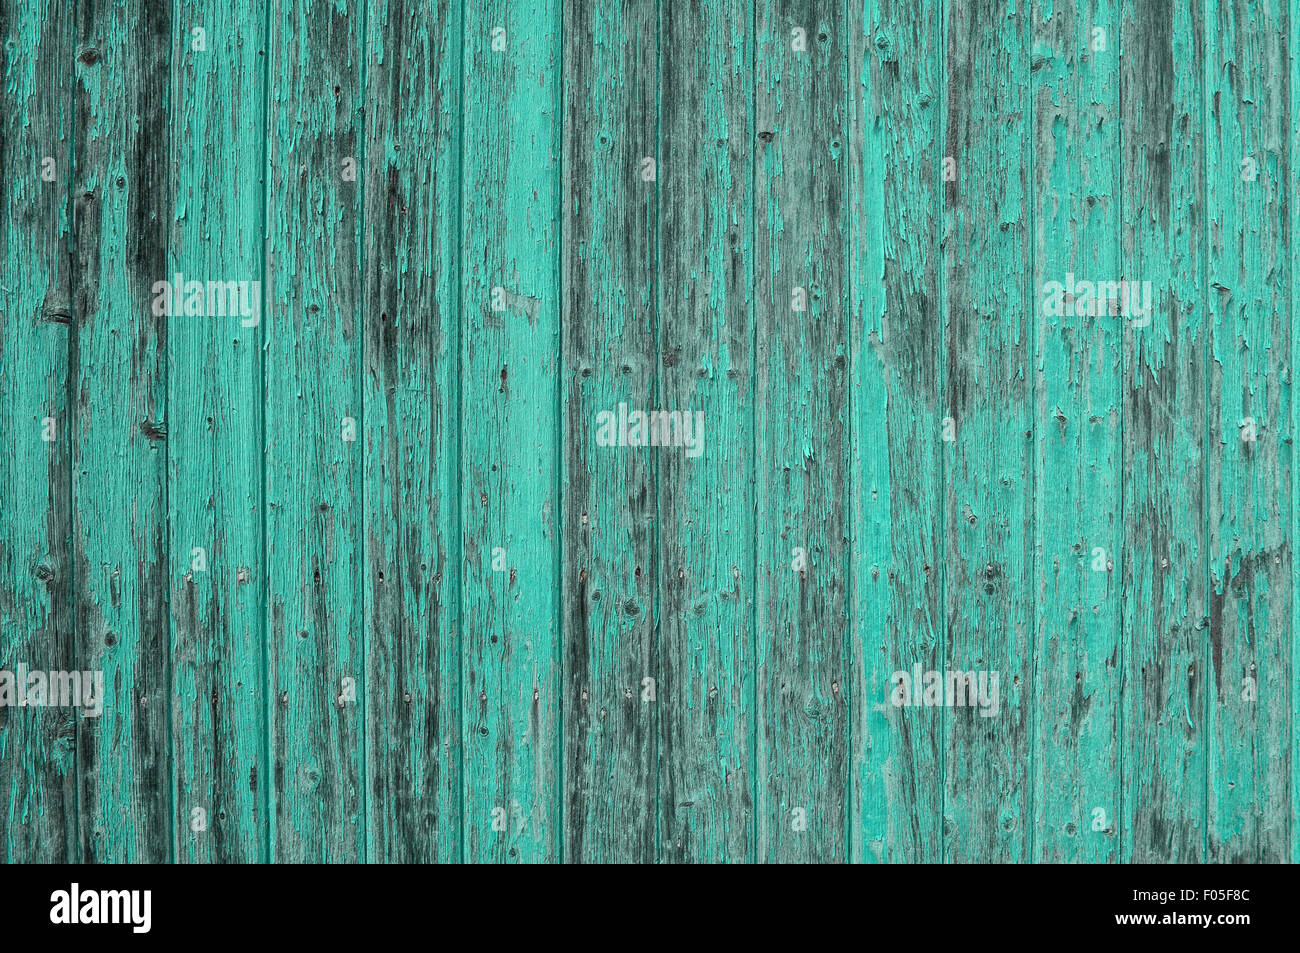 Wooden Turquoise Colored Background Abstract Rustic Surface Blue Green Shabby Chic Wallpaper Texture